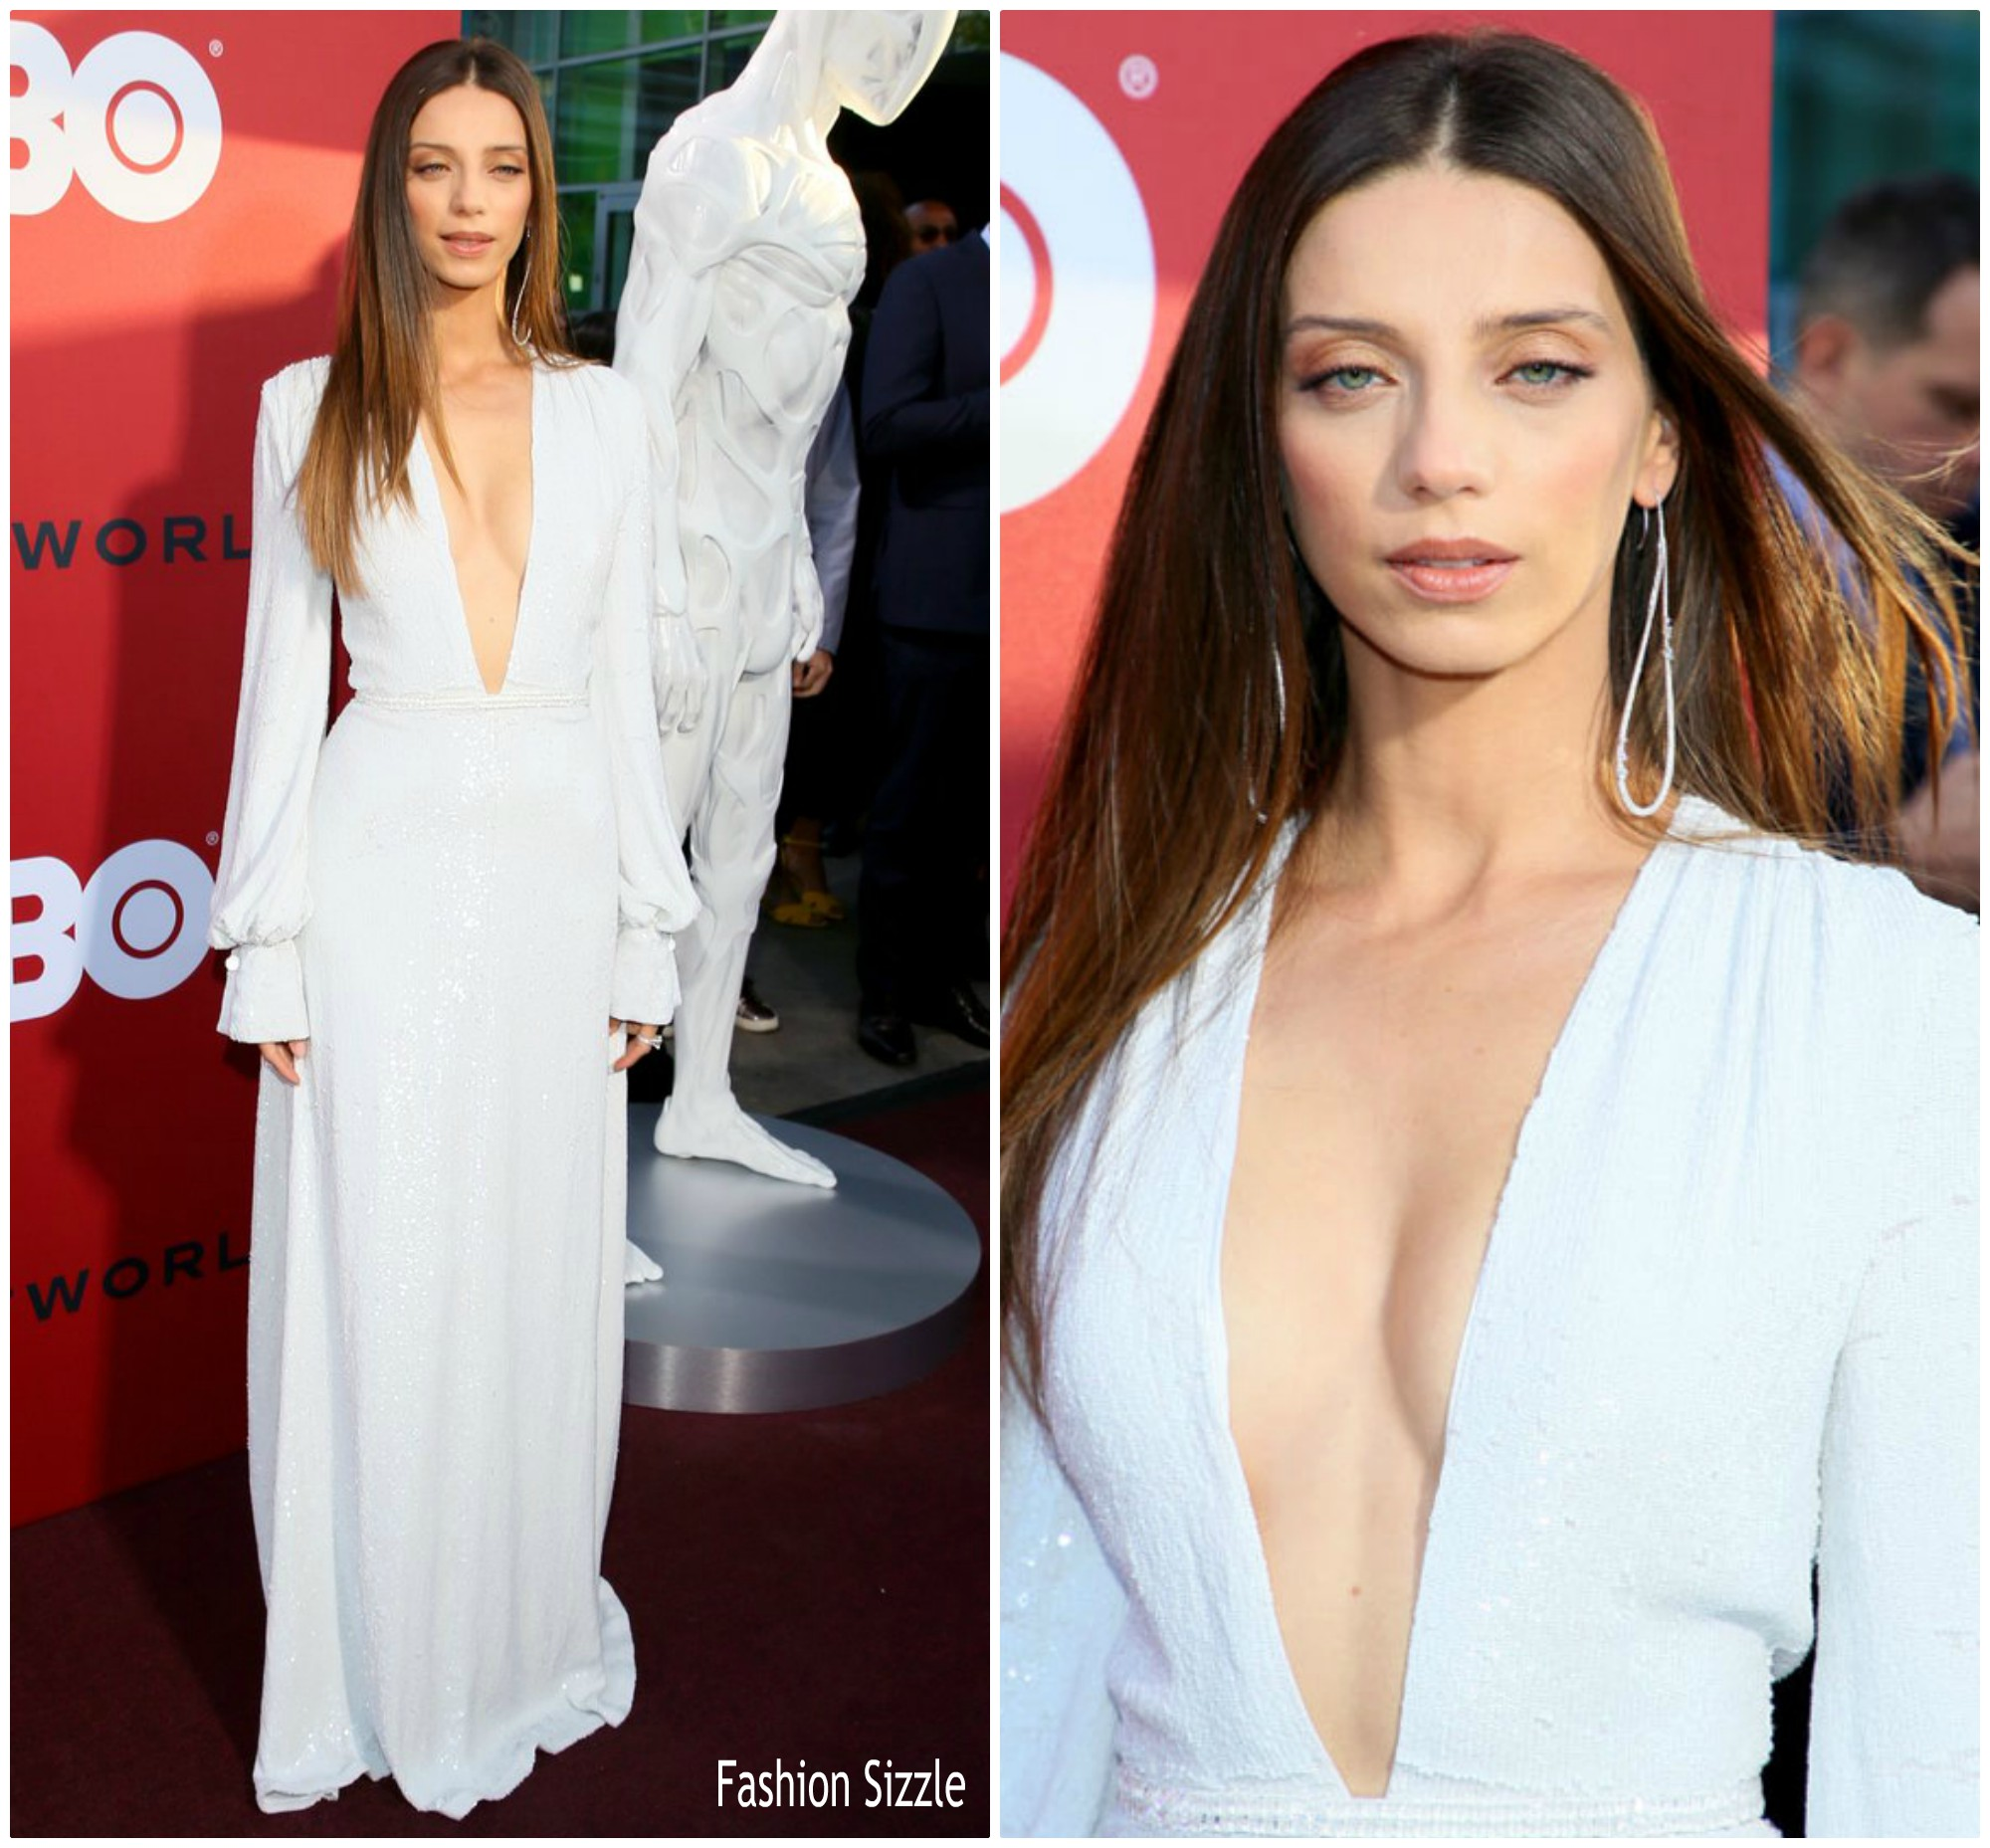 angela-sarafyan-in-honor-westworld-season-2-la-premiere